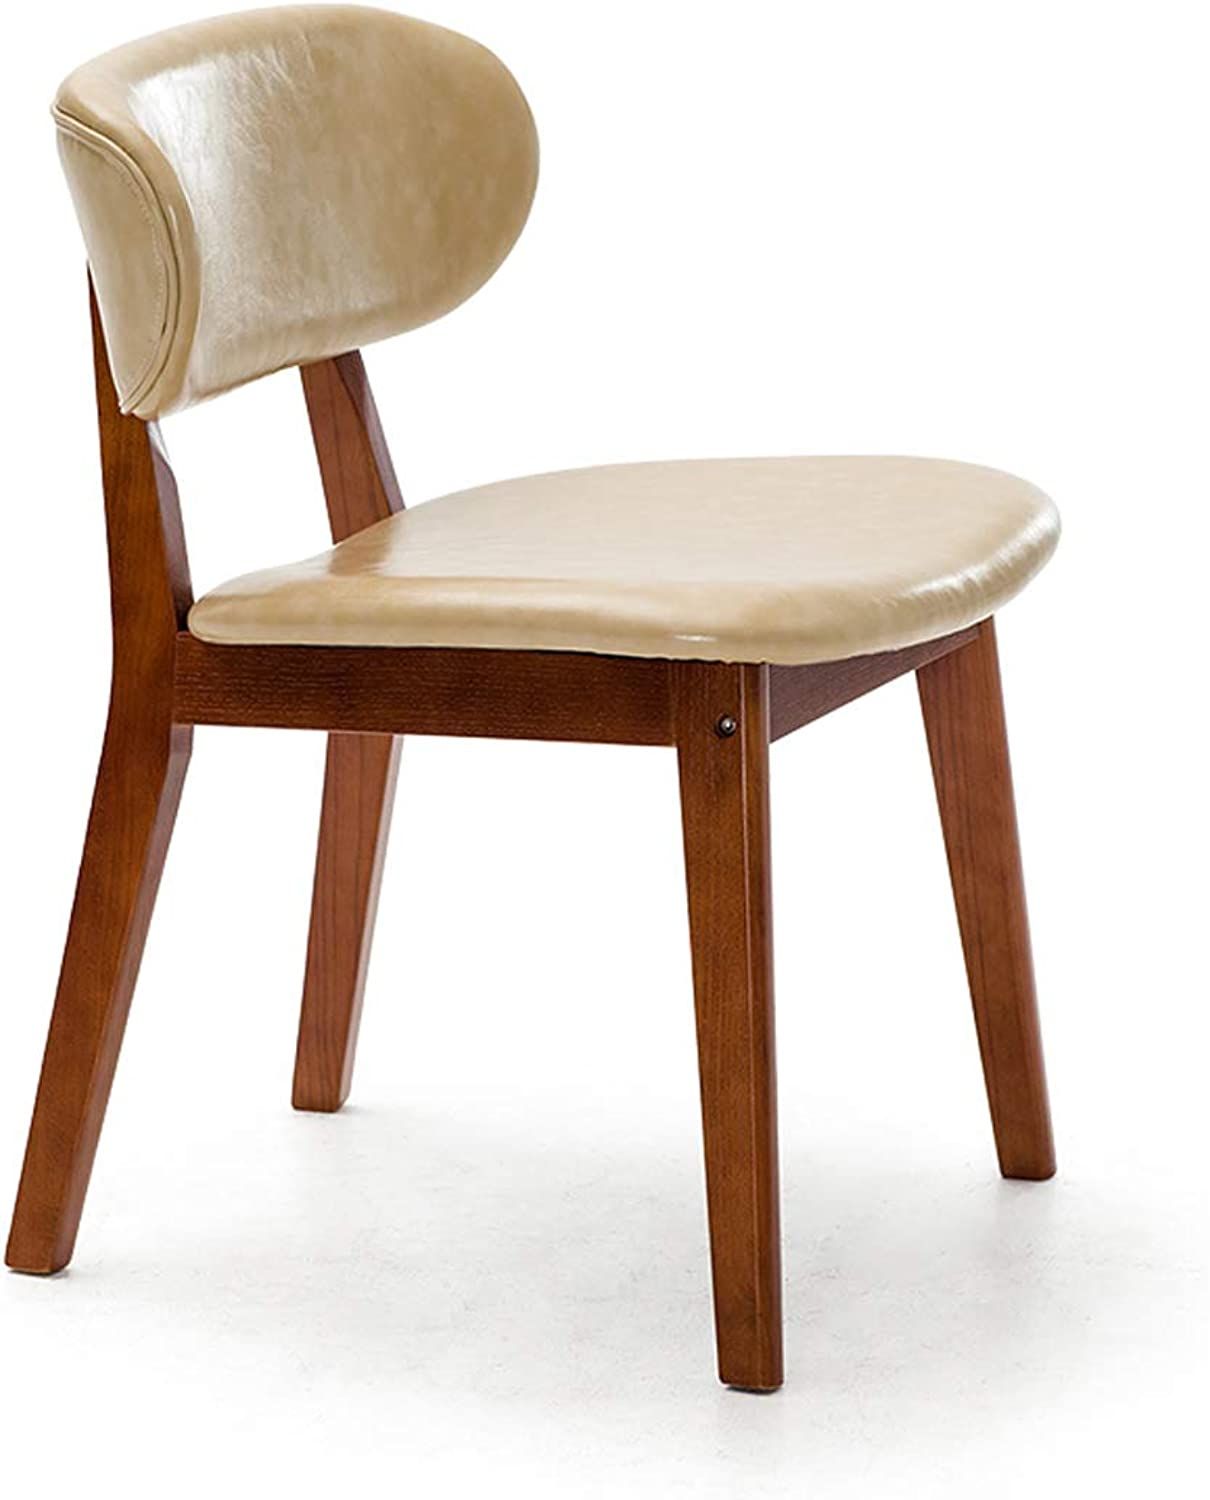 HLQW Nordic Dining Chair Household Backrest Chair Modern Simple Restaurant Leisure Chair Solid Wood Chair Creative Desk and Chair 12